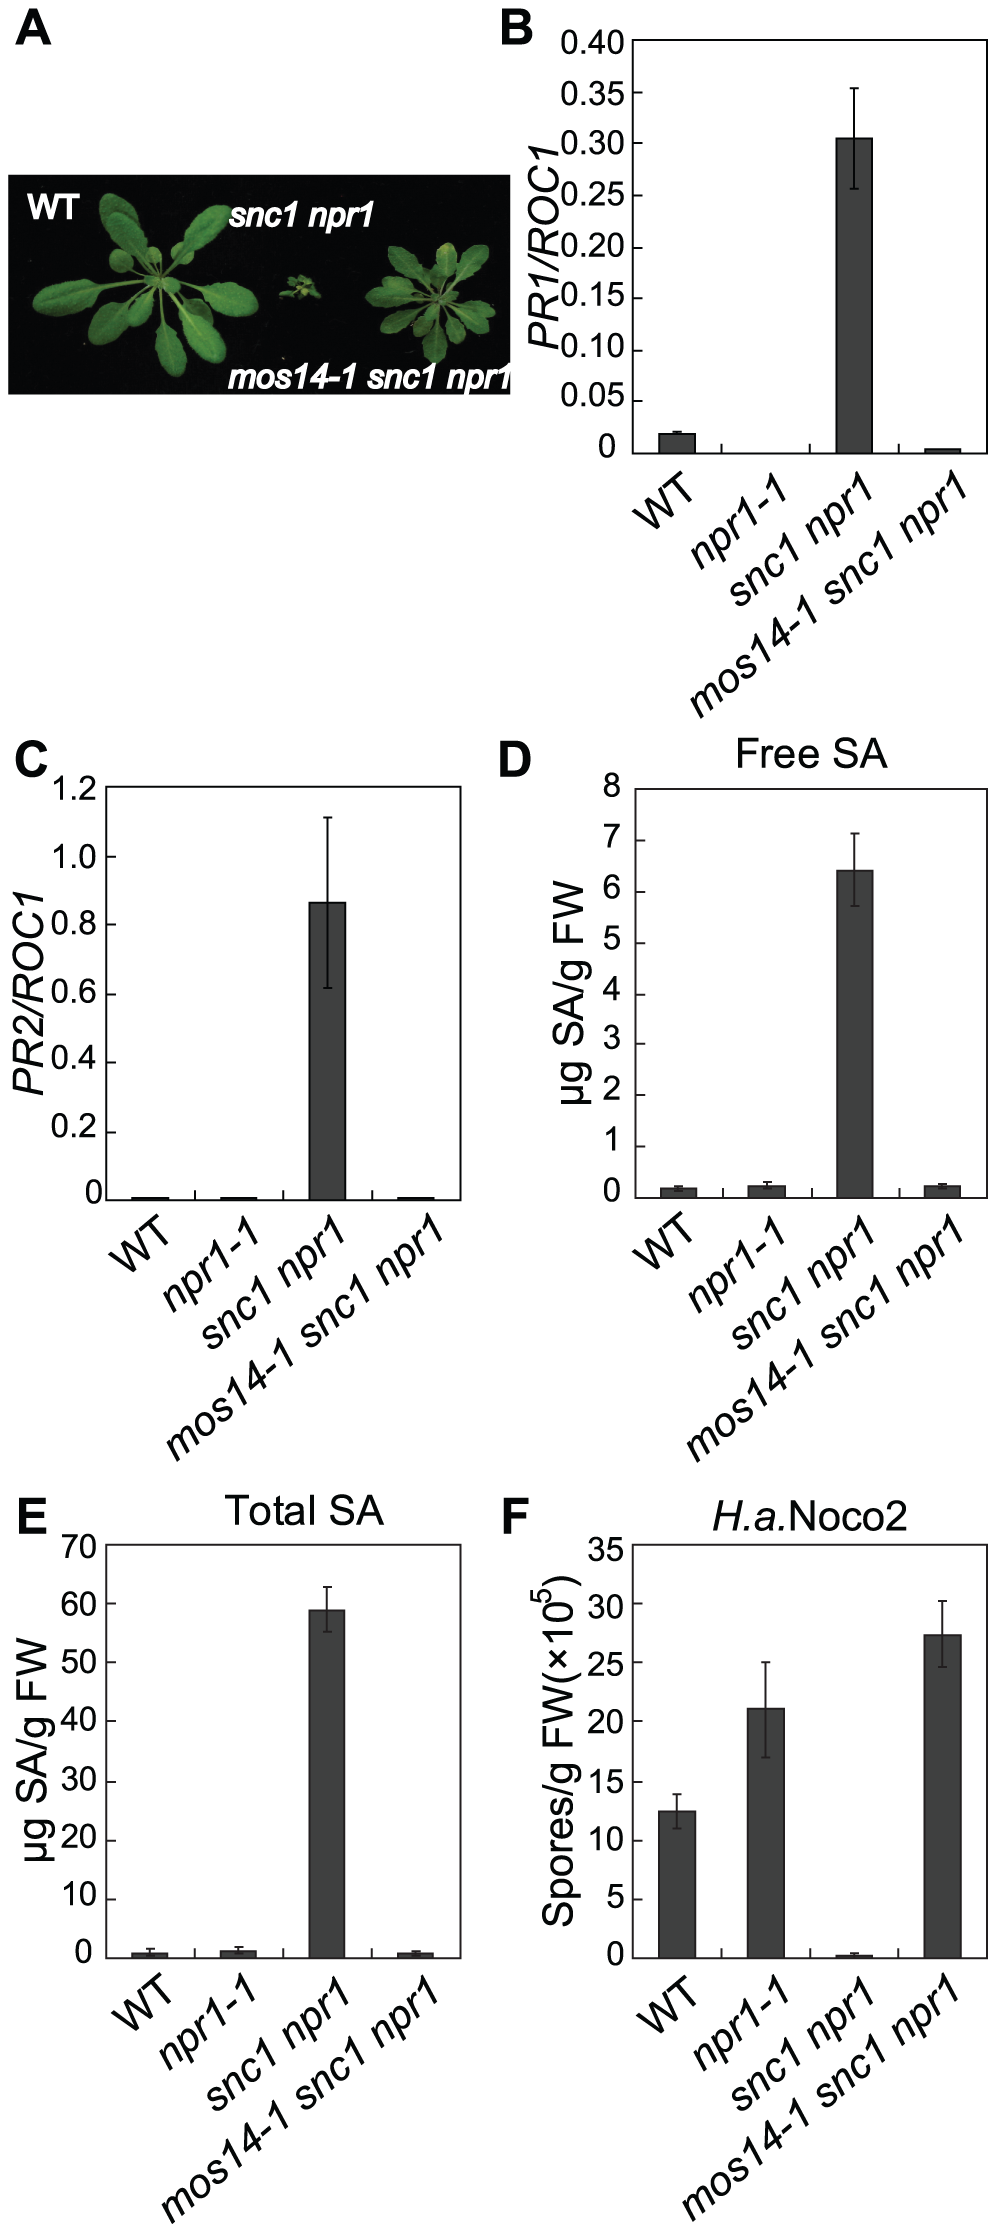 Constitutive immune responses in <i>snc1</i> are suppressed by <i>mos14-1</i>.